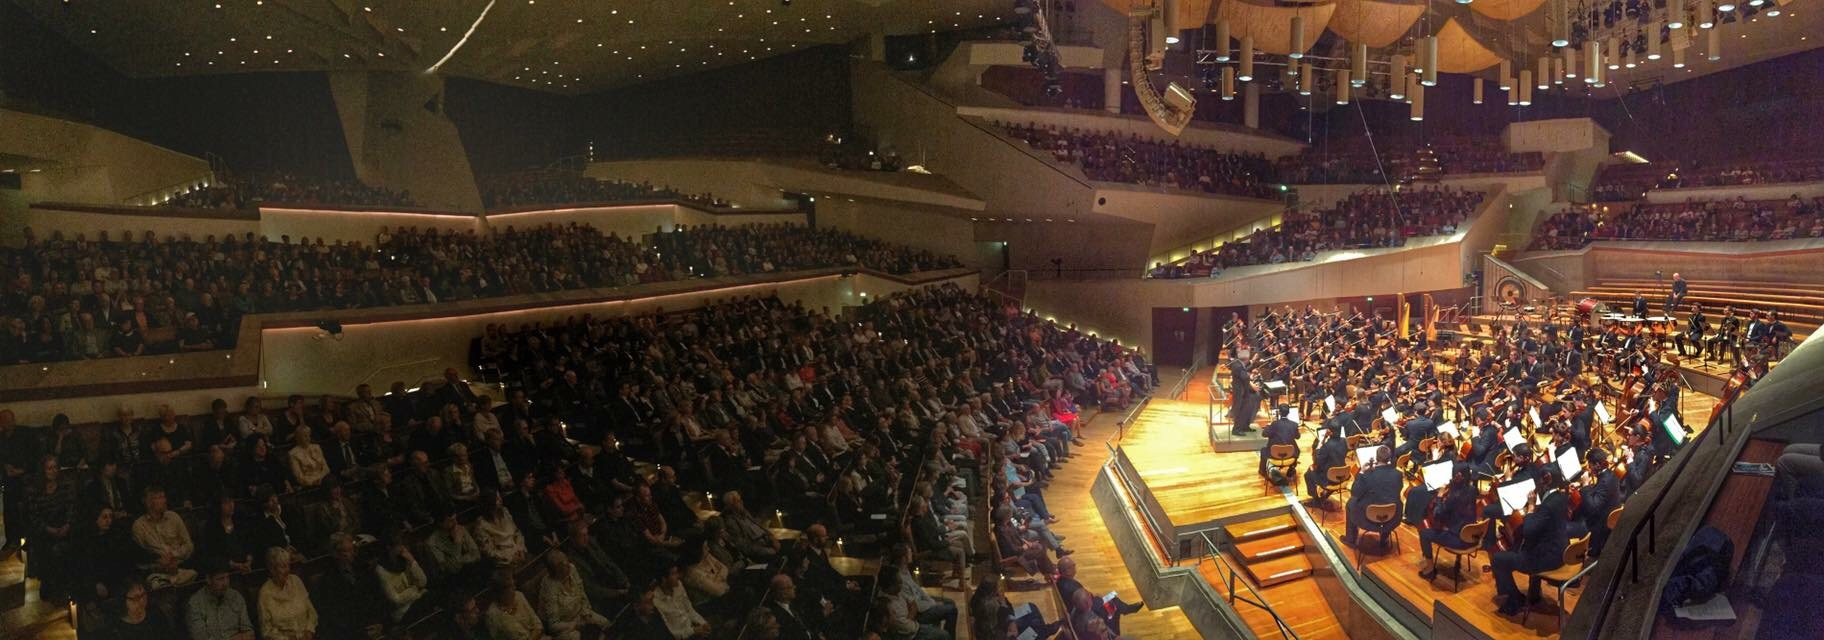 Benjamin Zander and BPYO get a standing ovation in The Berlin Philharmonic Hall.